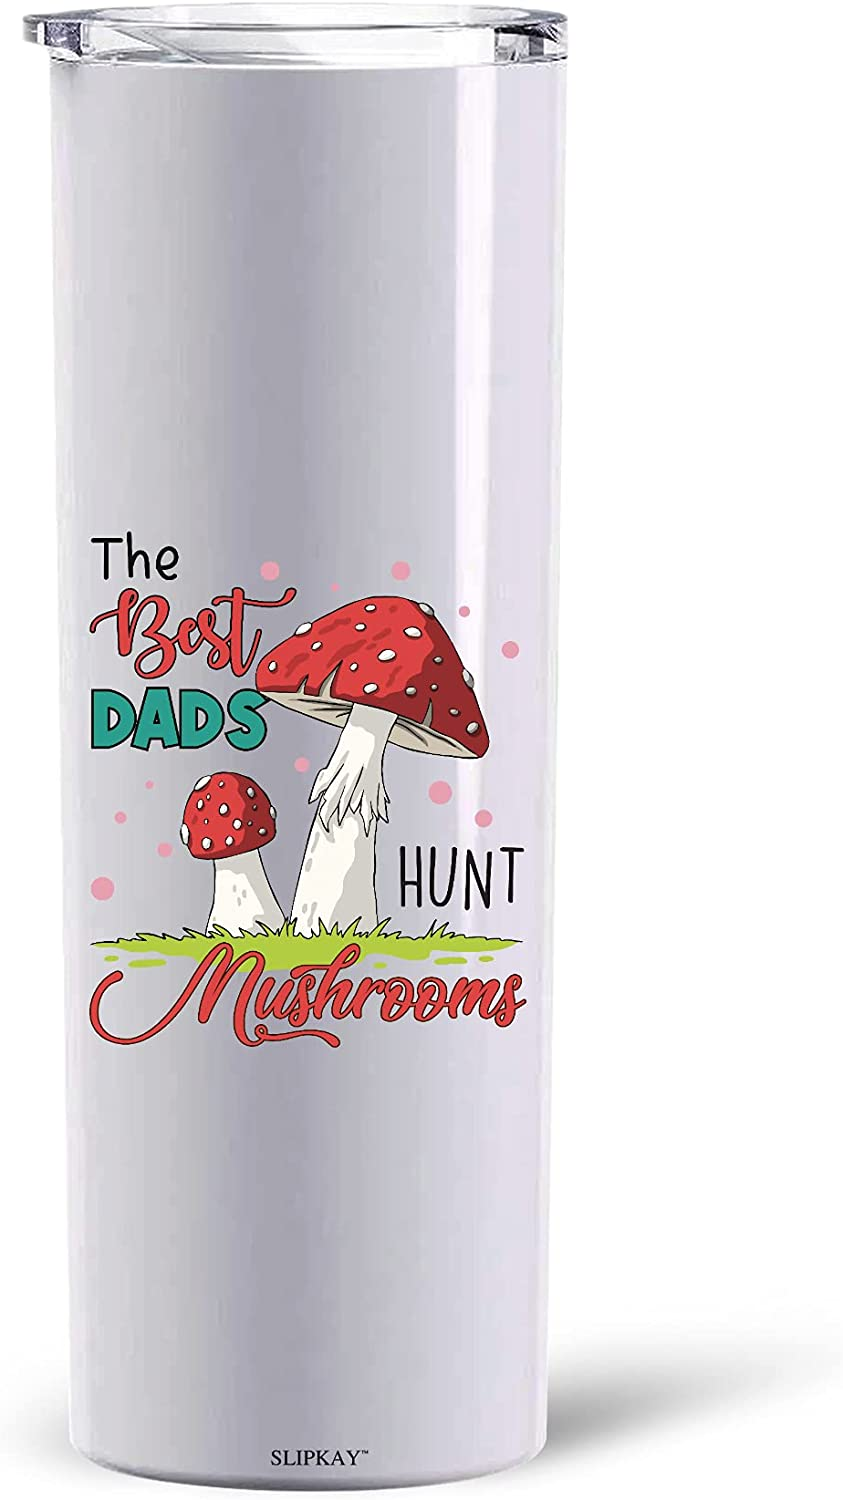 Free shipping anywhere in the nation The Best Dads Hunt 20oz Max 70% OFF SS Tumbler Mushrooms